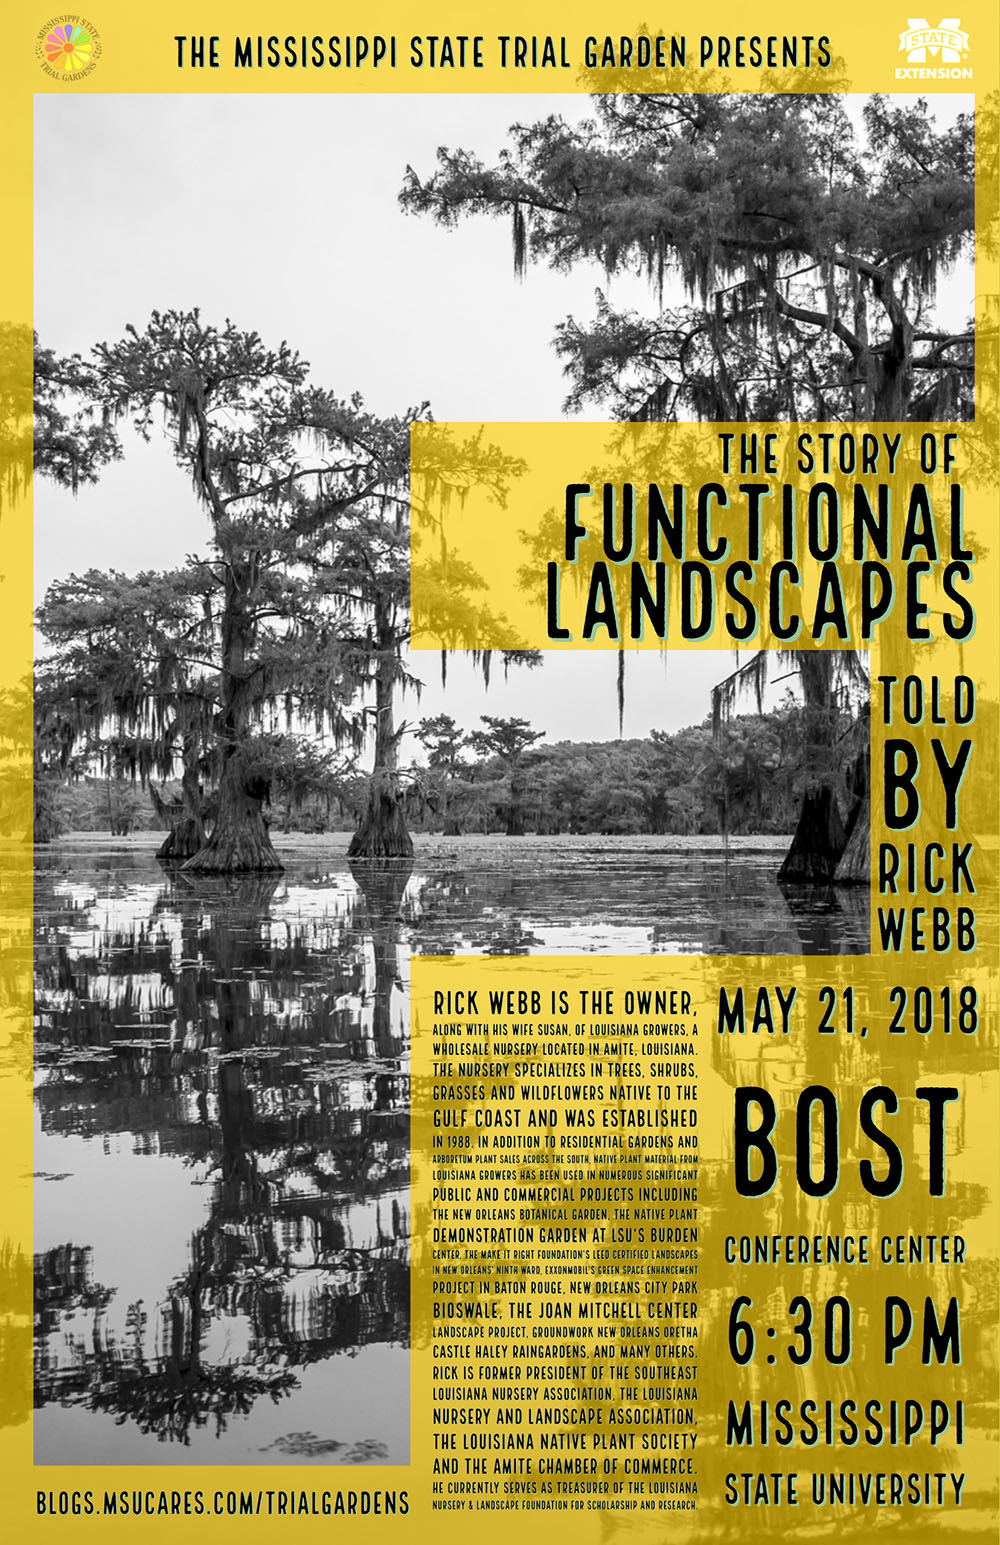 The Story of Functional Landscapes